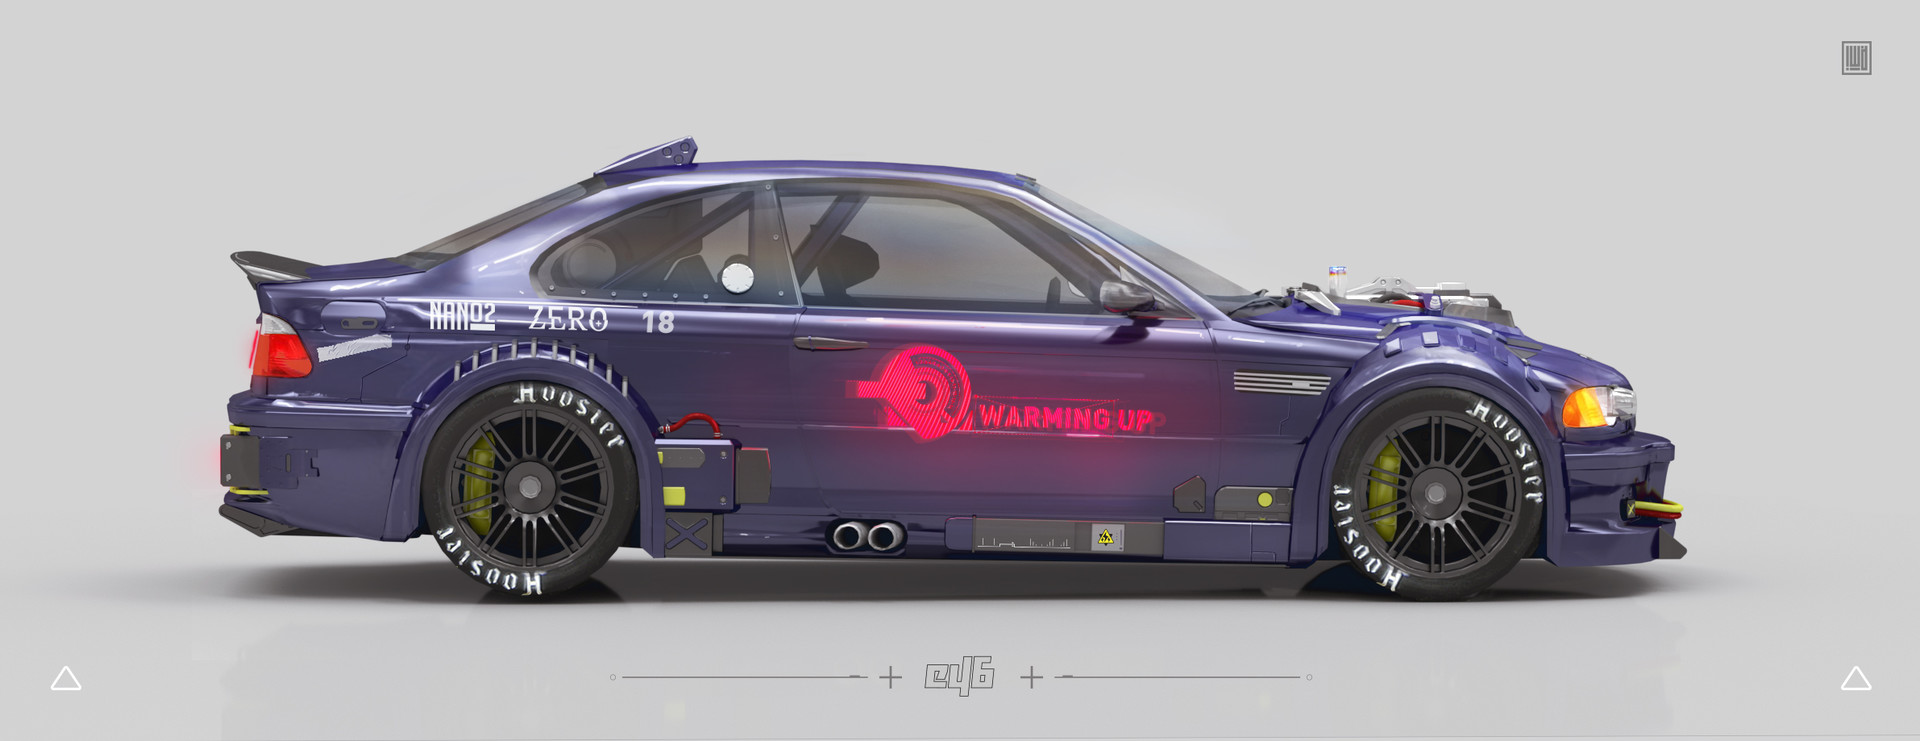 Lewis wagstx car concept final lw